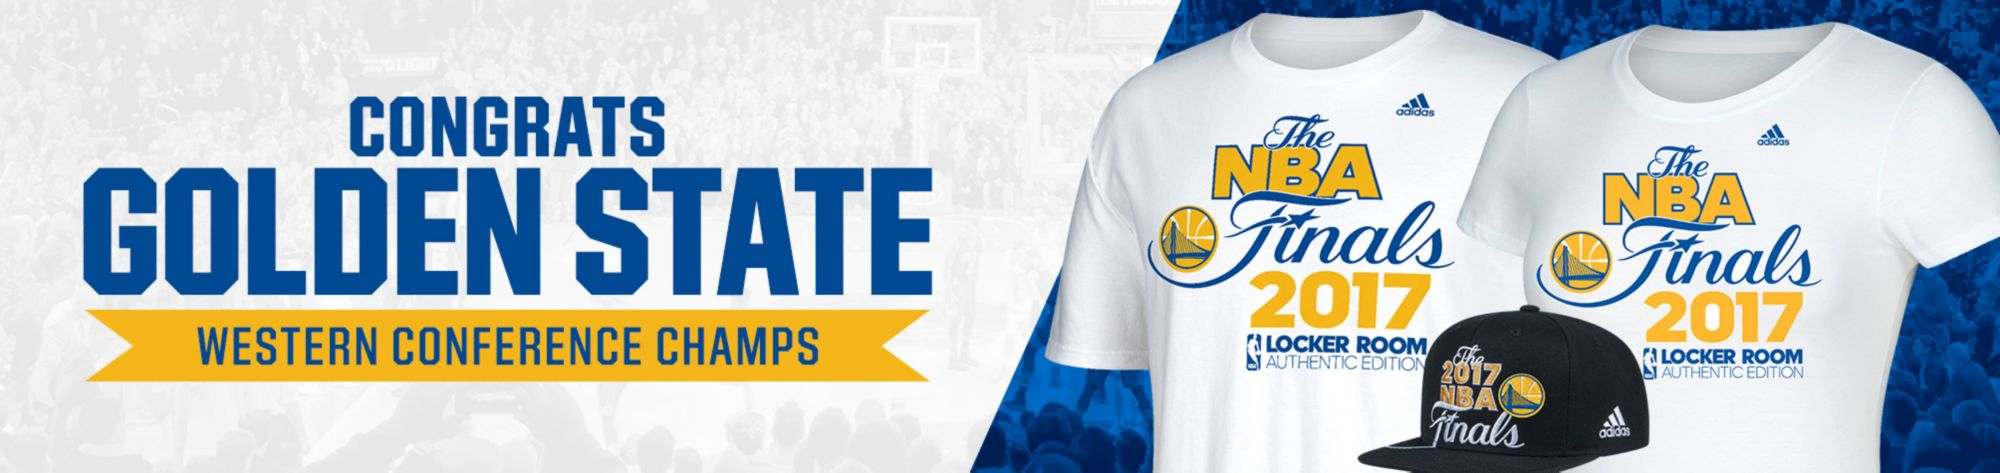 Congrats Golden State Warriors!